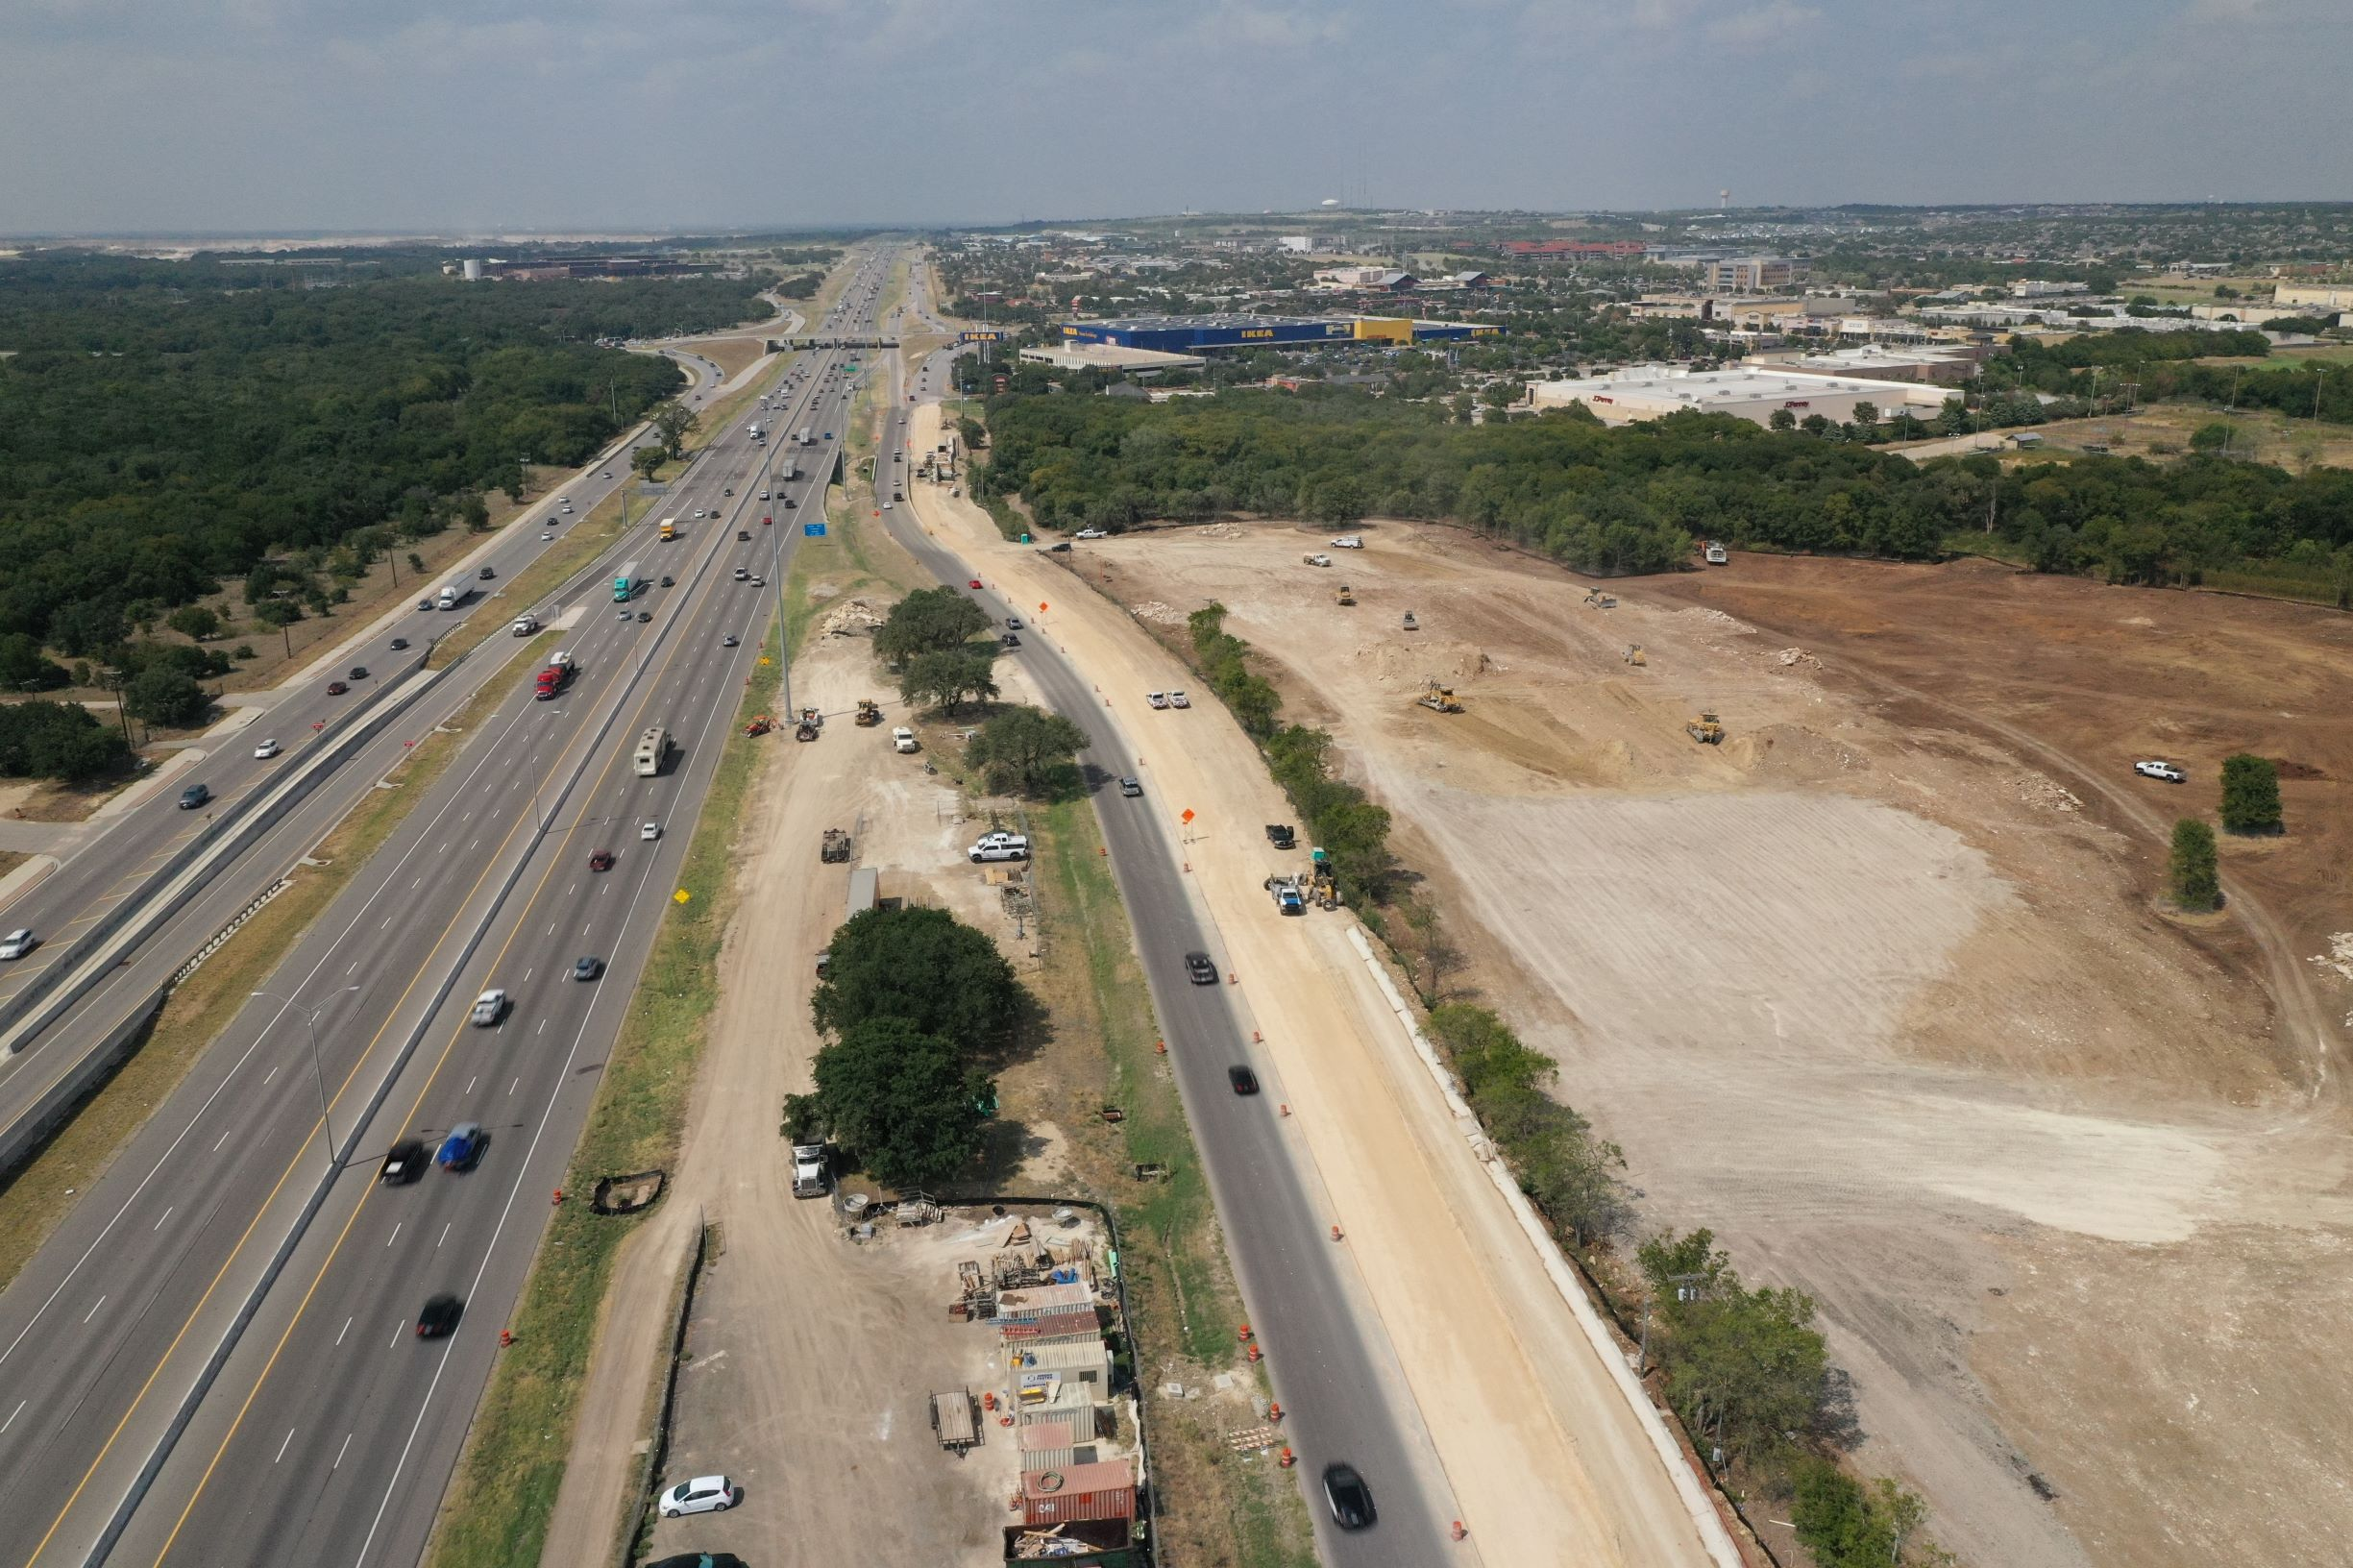 Northbound I-35 from FM 3406 to RM 1431 frontage road widening progress - September 2020